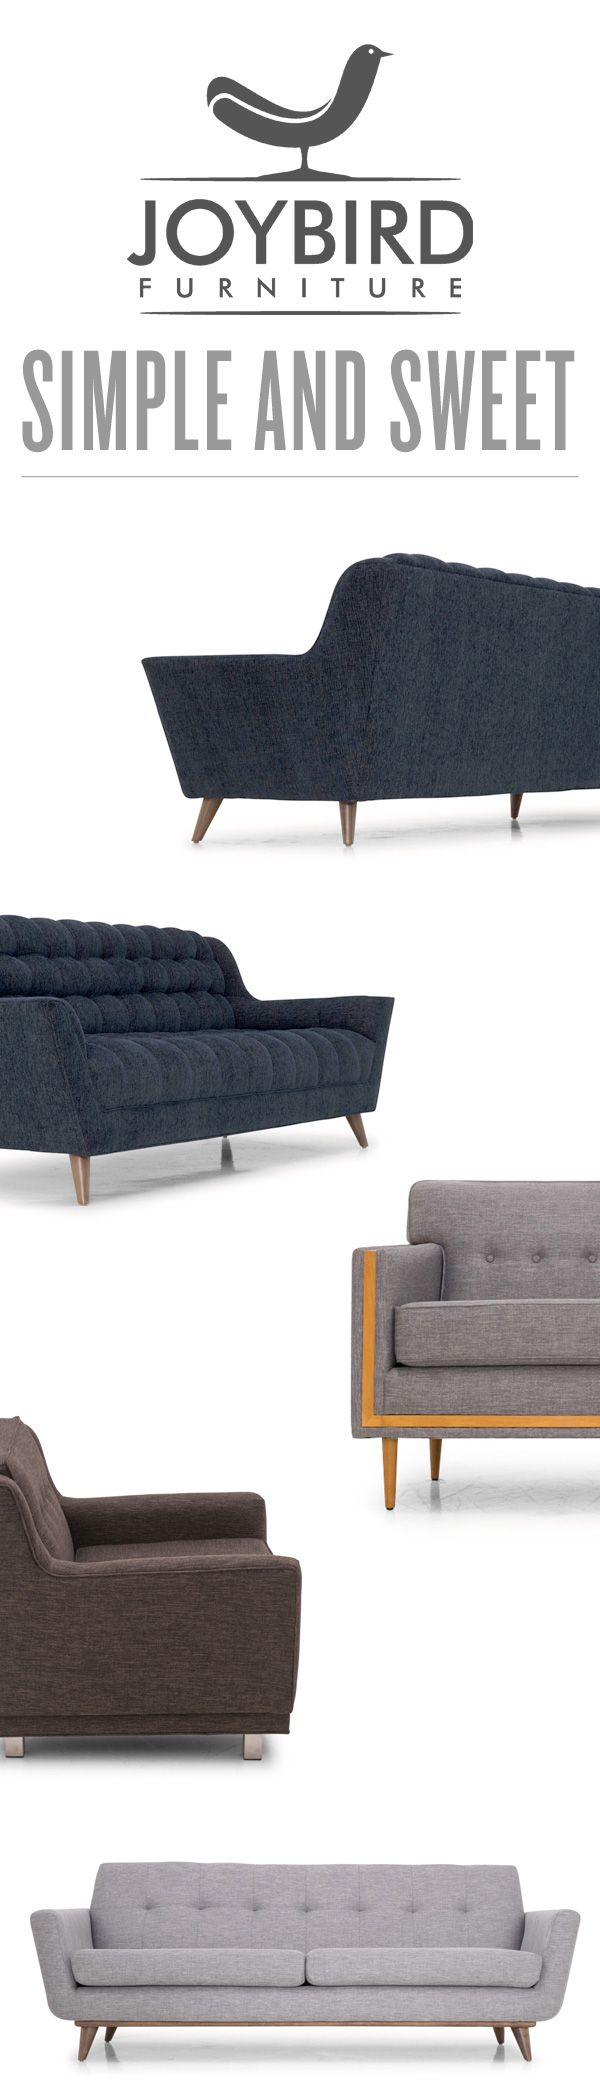 Neutral tones done right. With over 100 colors to choose from Joybird allows you to customize handmade chairs, sofas, sectionals with the perfect shade for your room. Discover what Joybird offers #wearejoybird